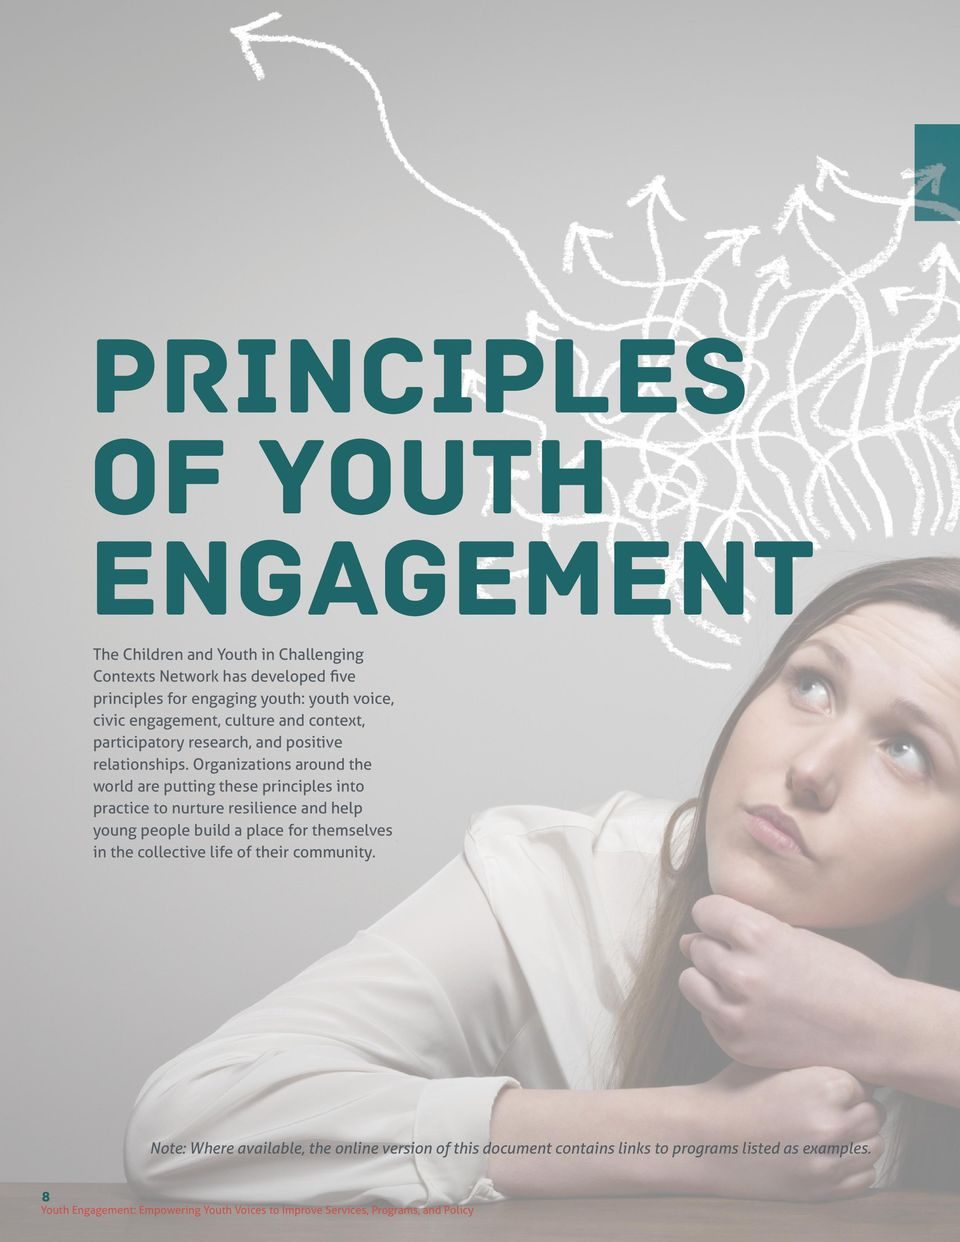 Organizations around the world are putting these principles into practice to nurture resilience and help young people build a place for themselves in the